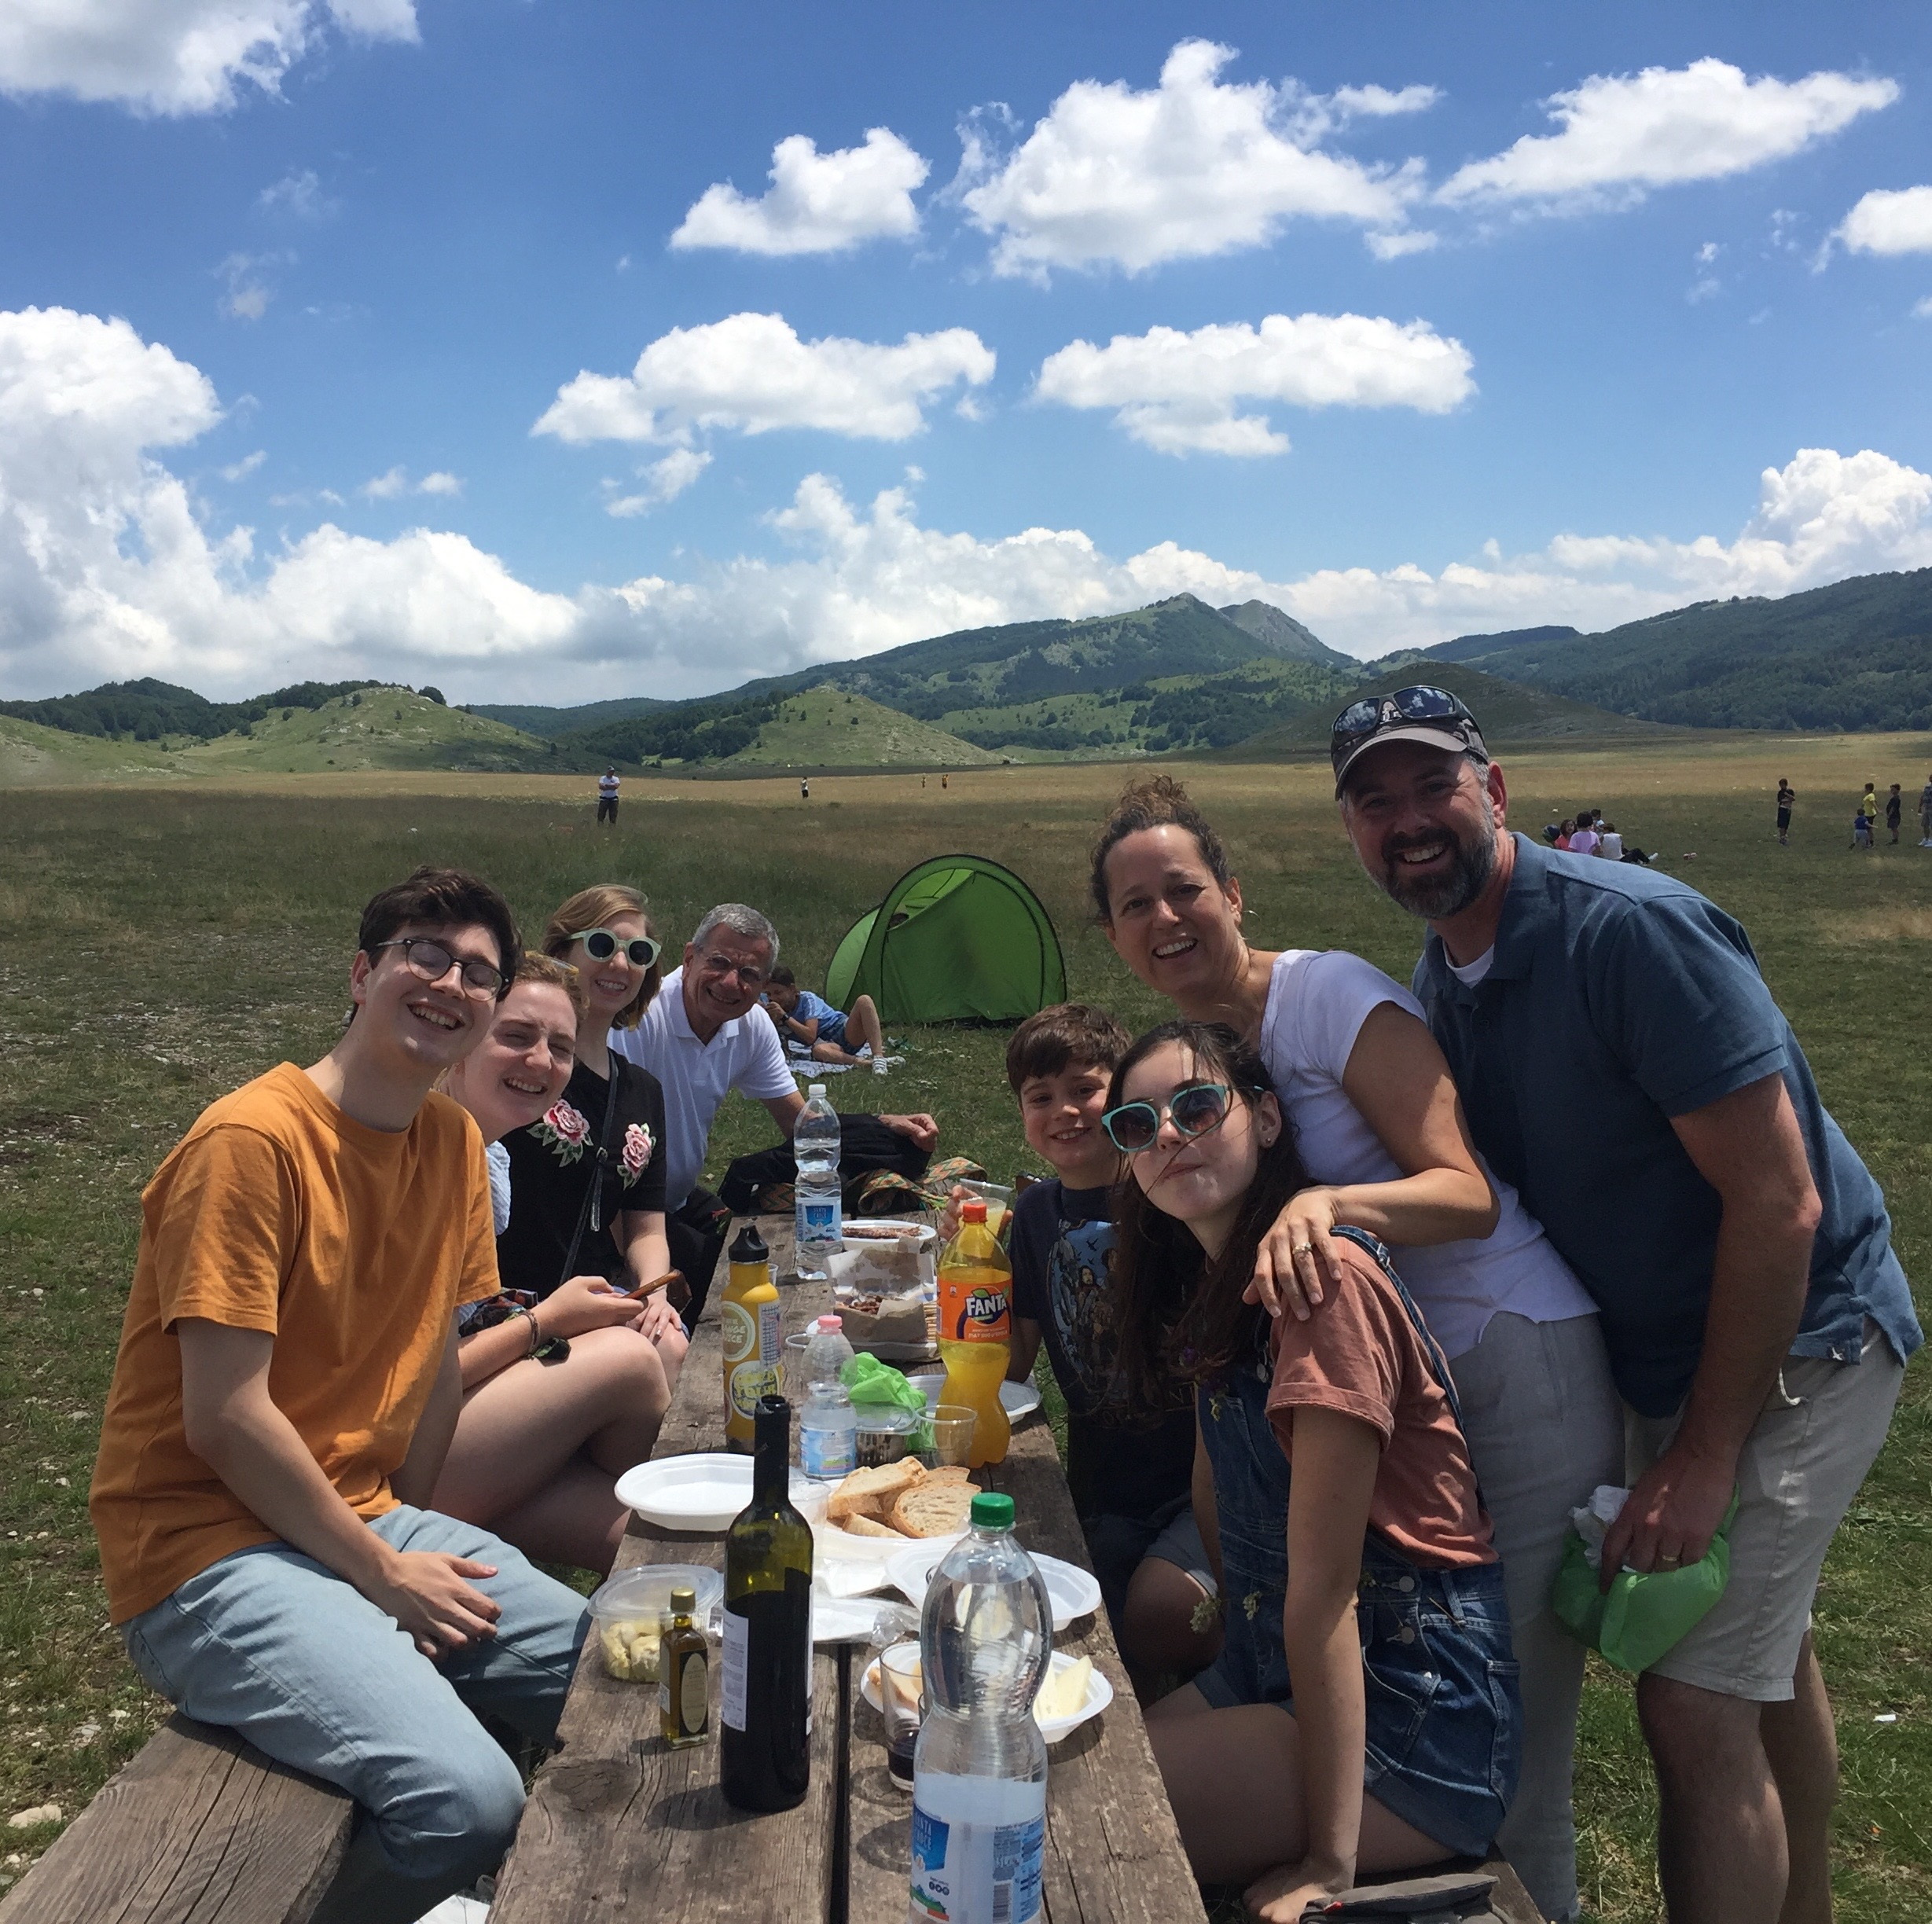 Lunch with friends in the grande outdoors